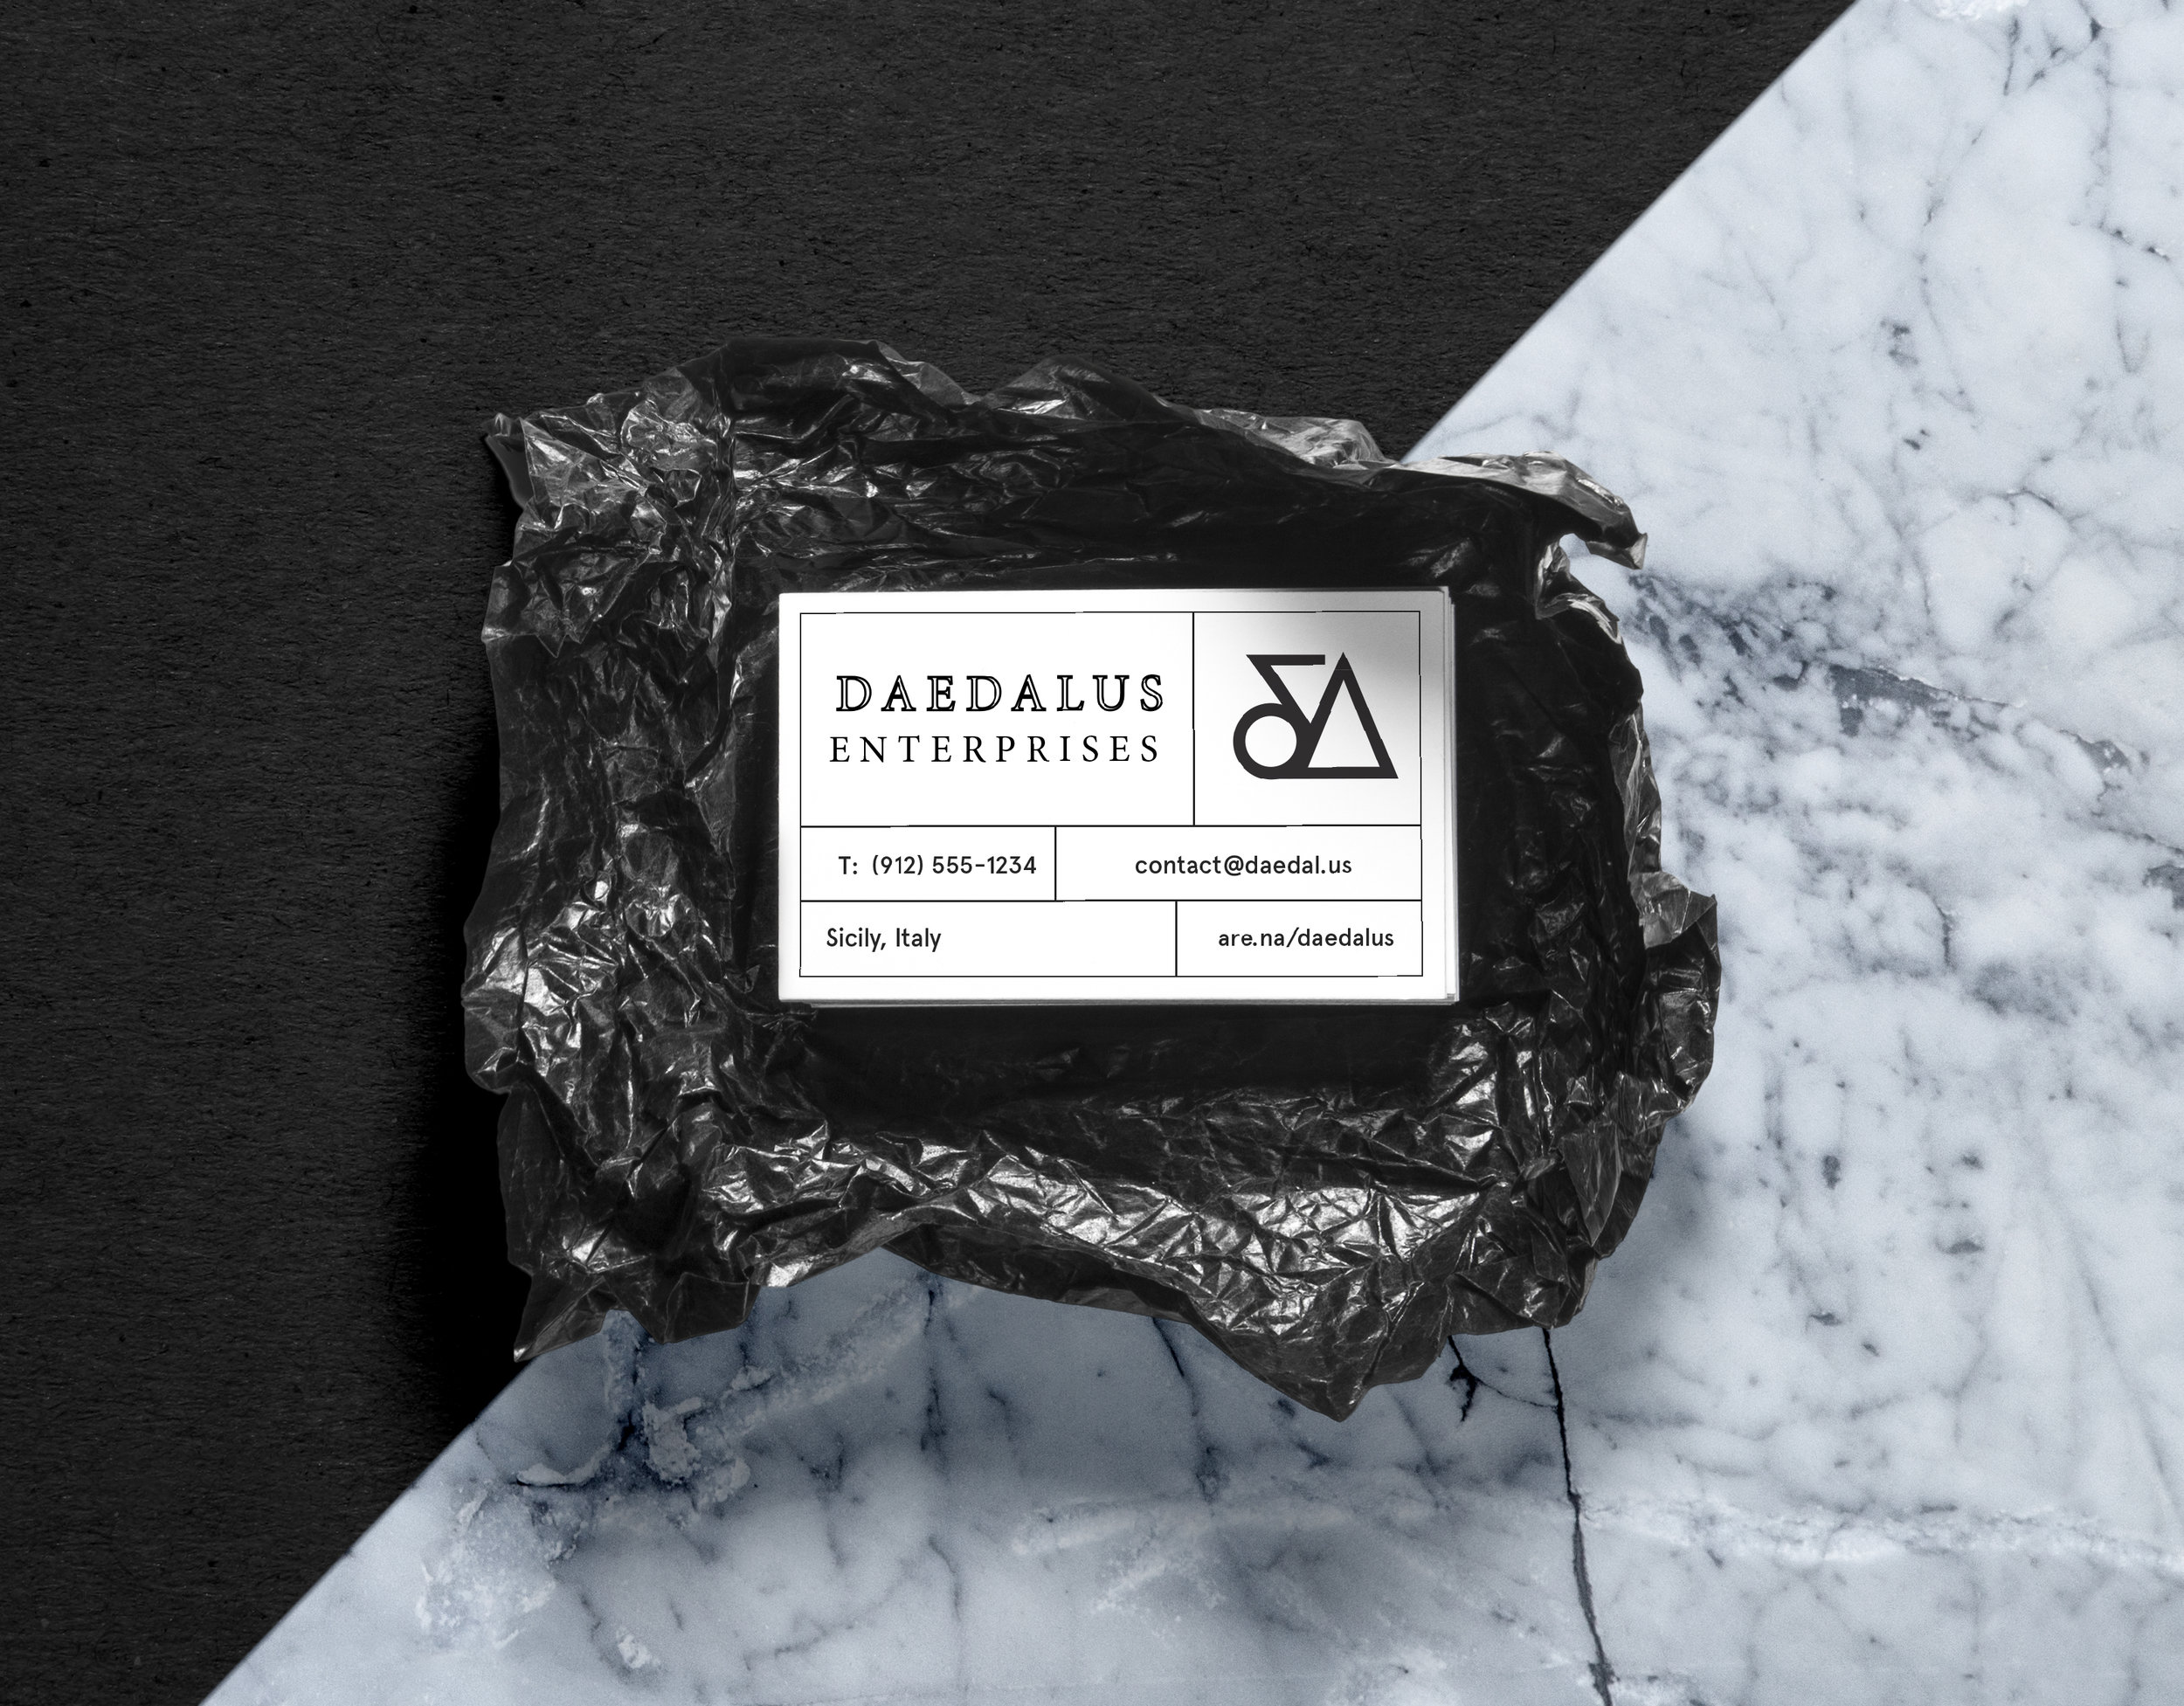 daedalus-businesscard.jpg